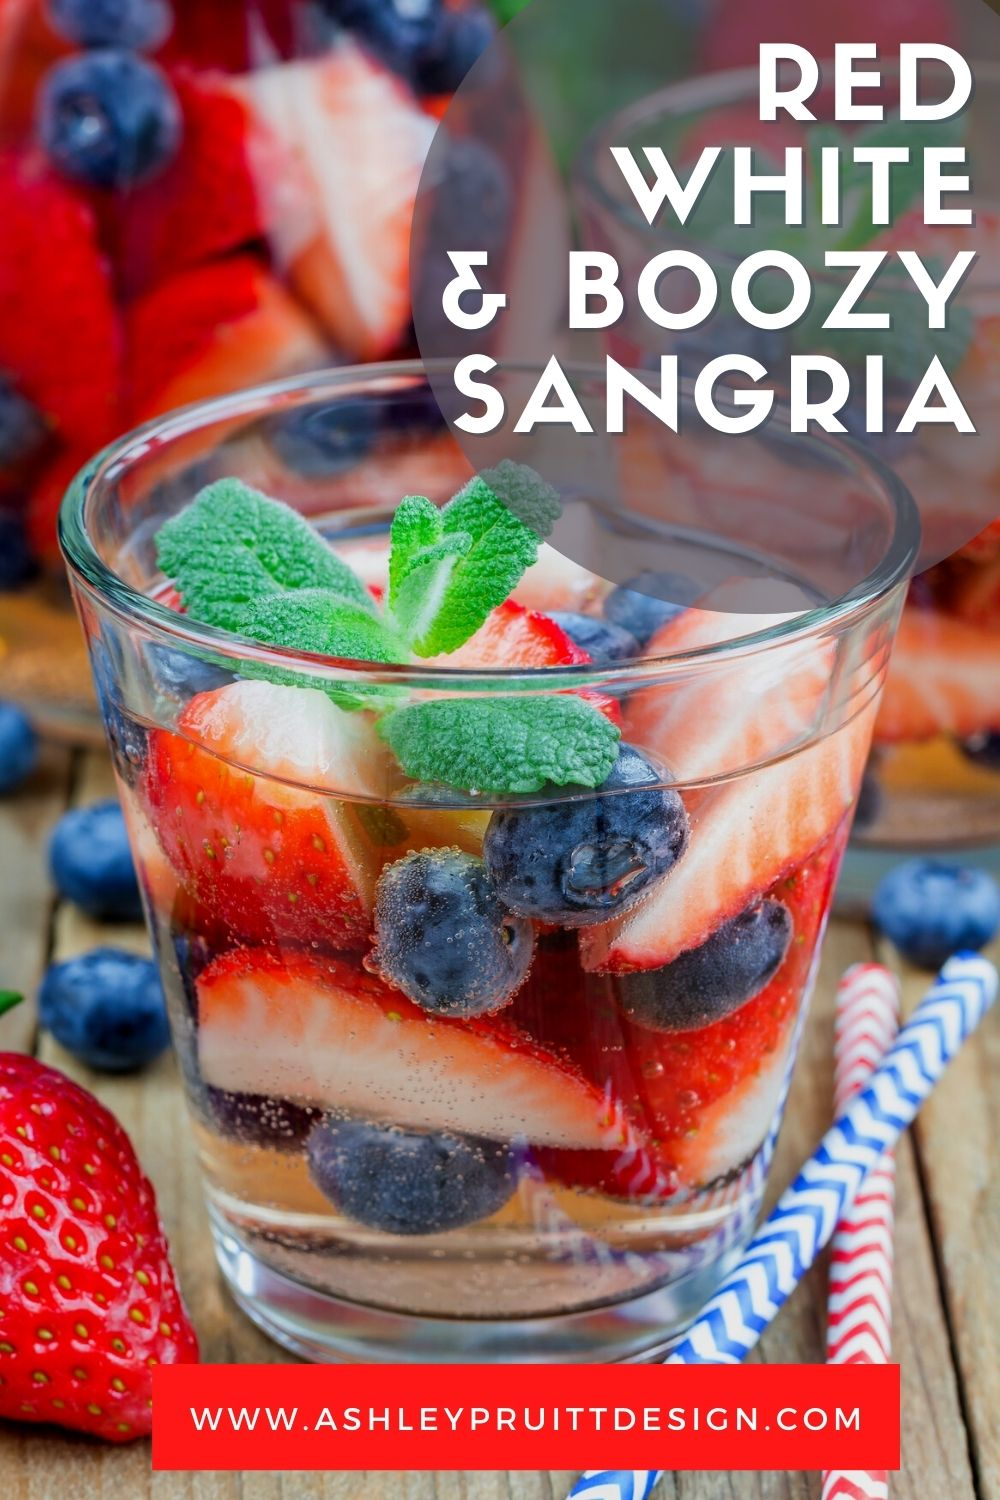 Red White And Boozy Patriotic Cocktail For Your Fourth of July Party